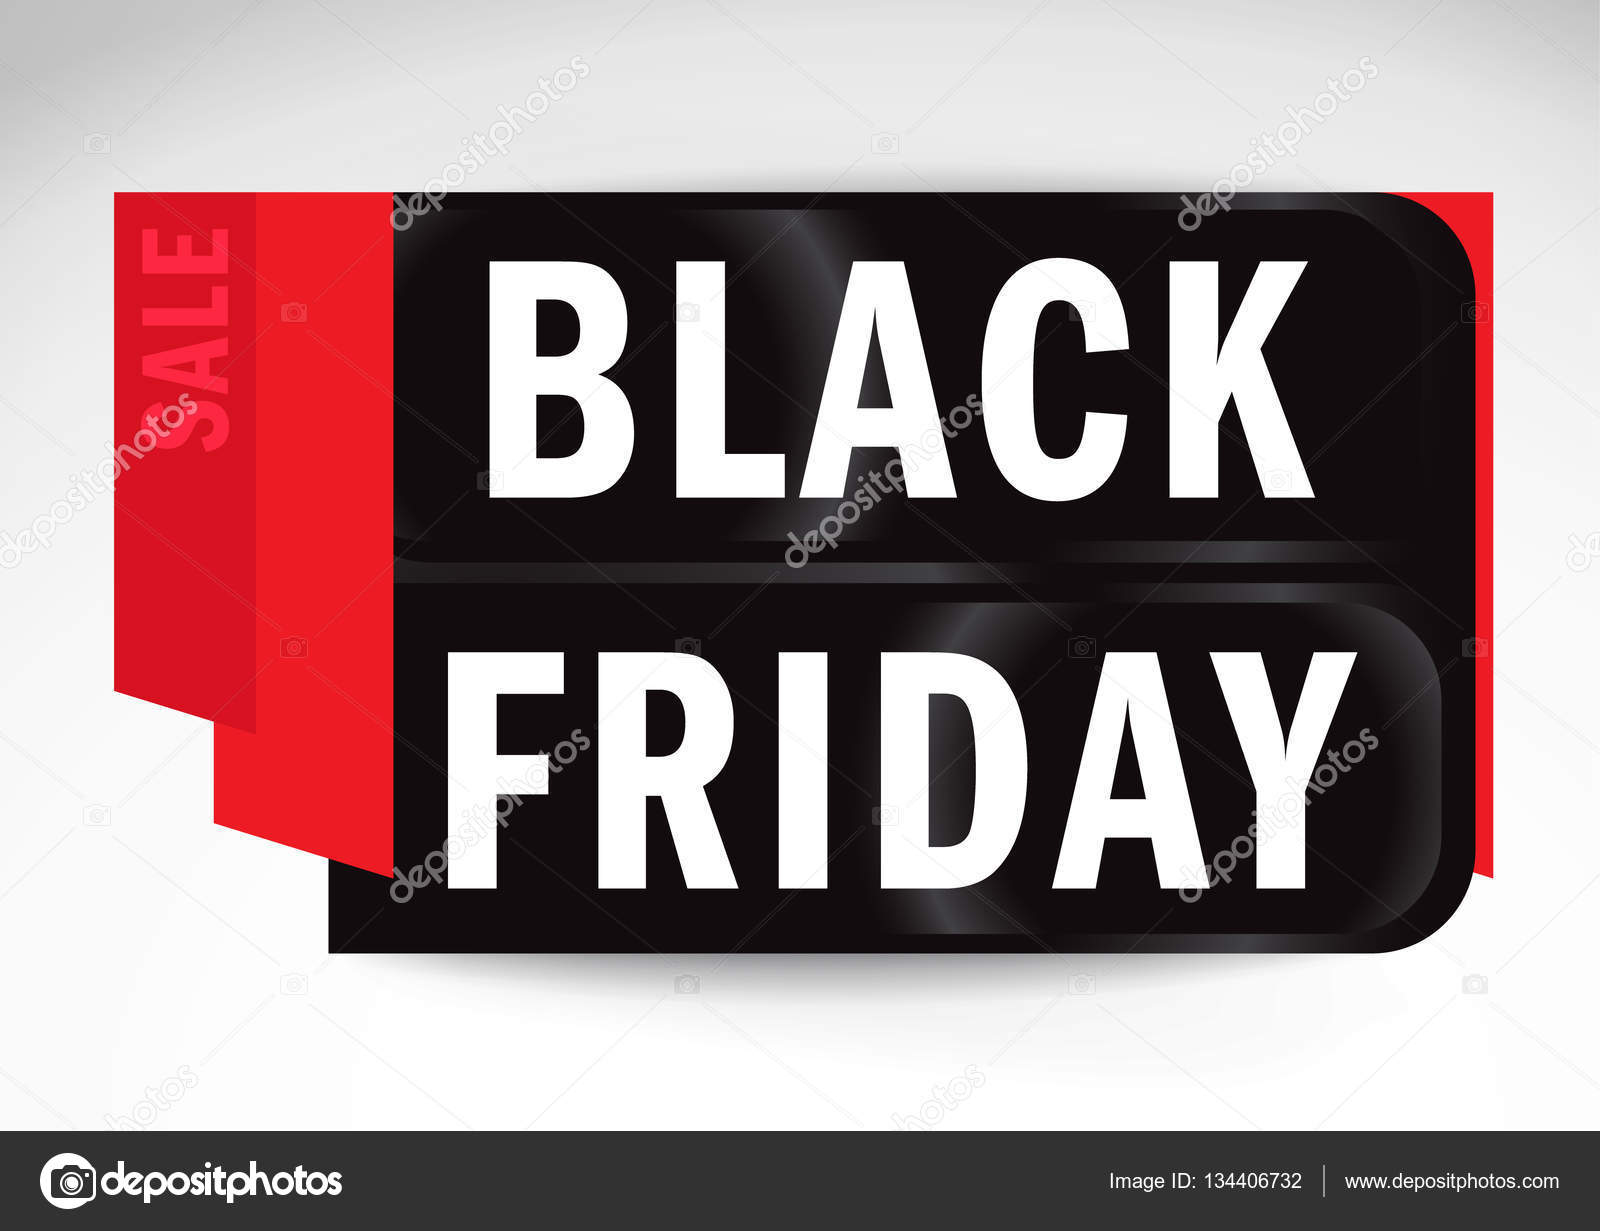 Black Friday Specials Black Friday Umsatz Band Special Offer Black Friday Banner